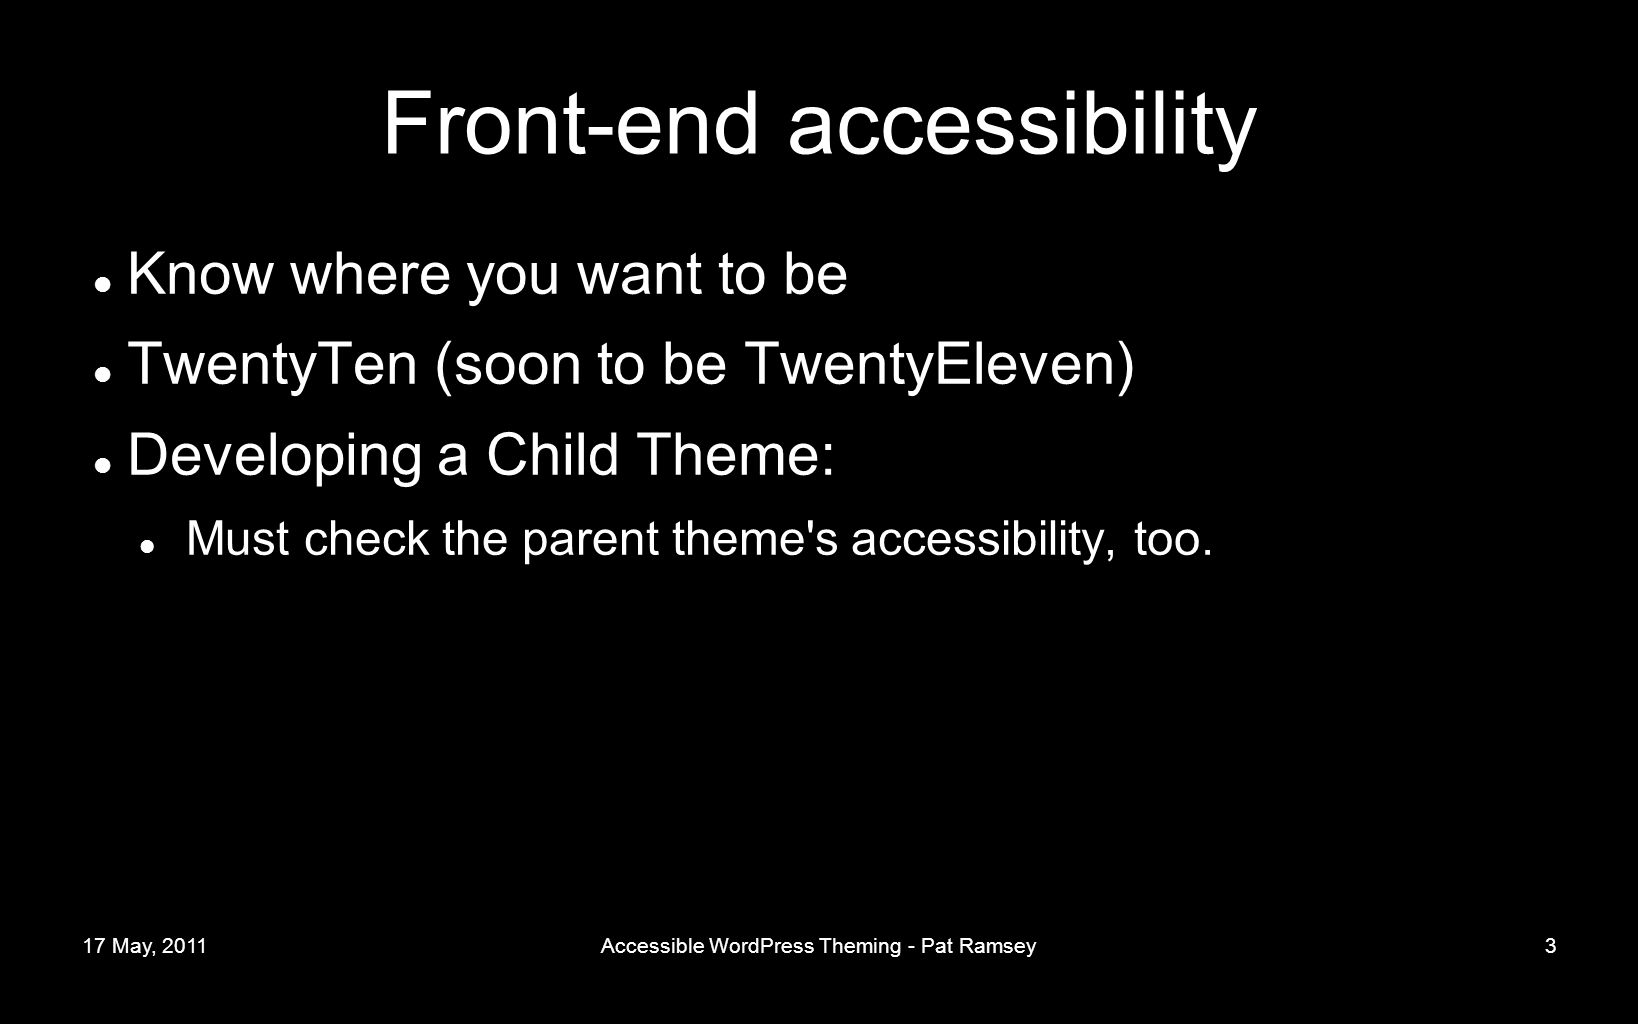 17 May, 2011Accessible WordPress Theming - Pat Ramsey3 Front-end accessibility Know where you want to be TwentyTen (soon to be TwentyEleven) Developing a Child Theme: Must check the parent theme s accessibility, too.